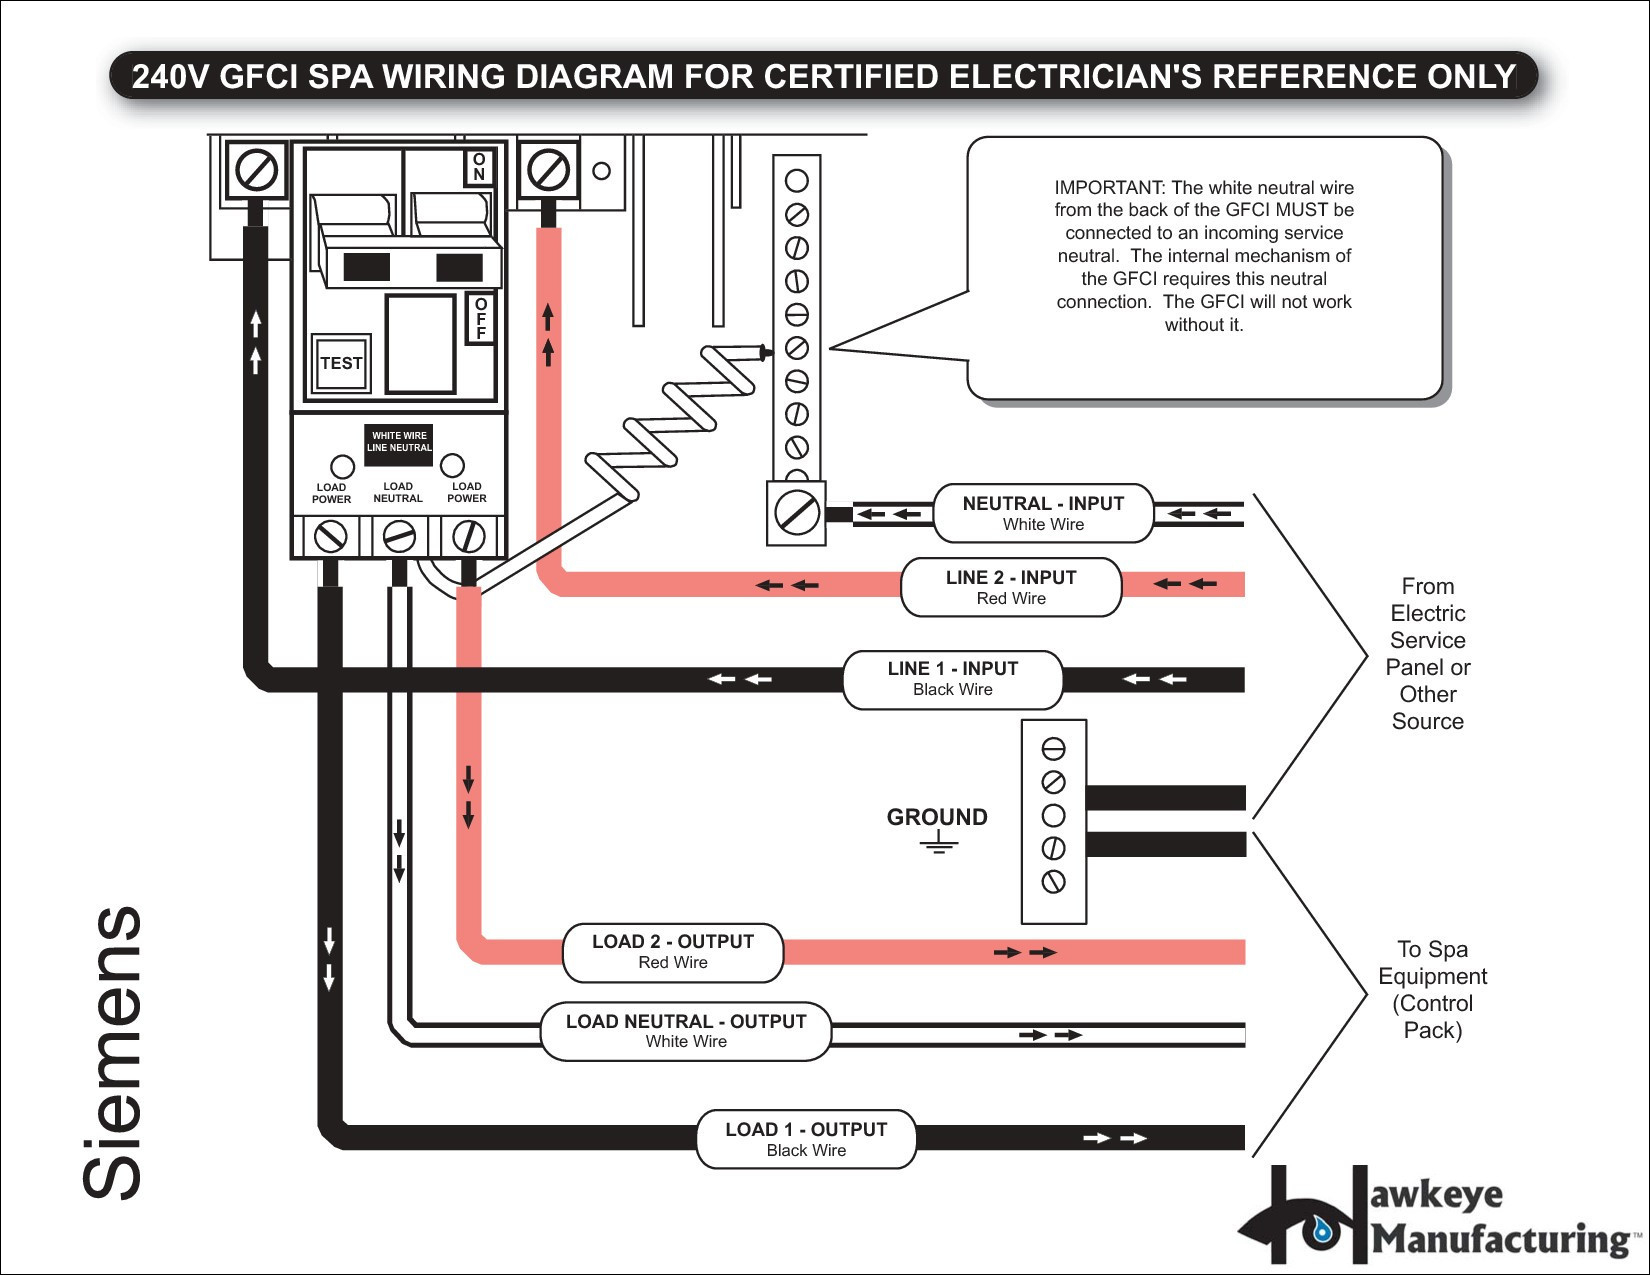 Gfi Breaker Wire Diagram - Wiring Diagram Progresif on ground fault relay wiring diagram, ground fault indicator wiring diagram, ground fault interrupter circuit breaker, arc fault wiring diagram, ground fault interrupter cable, ground fault breaker wiring diagram,